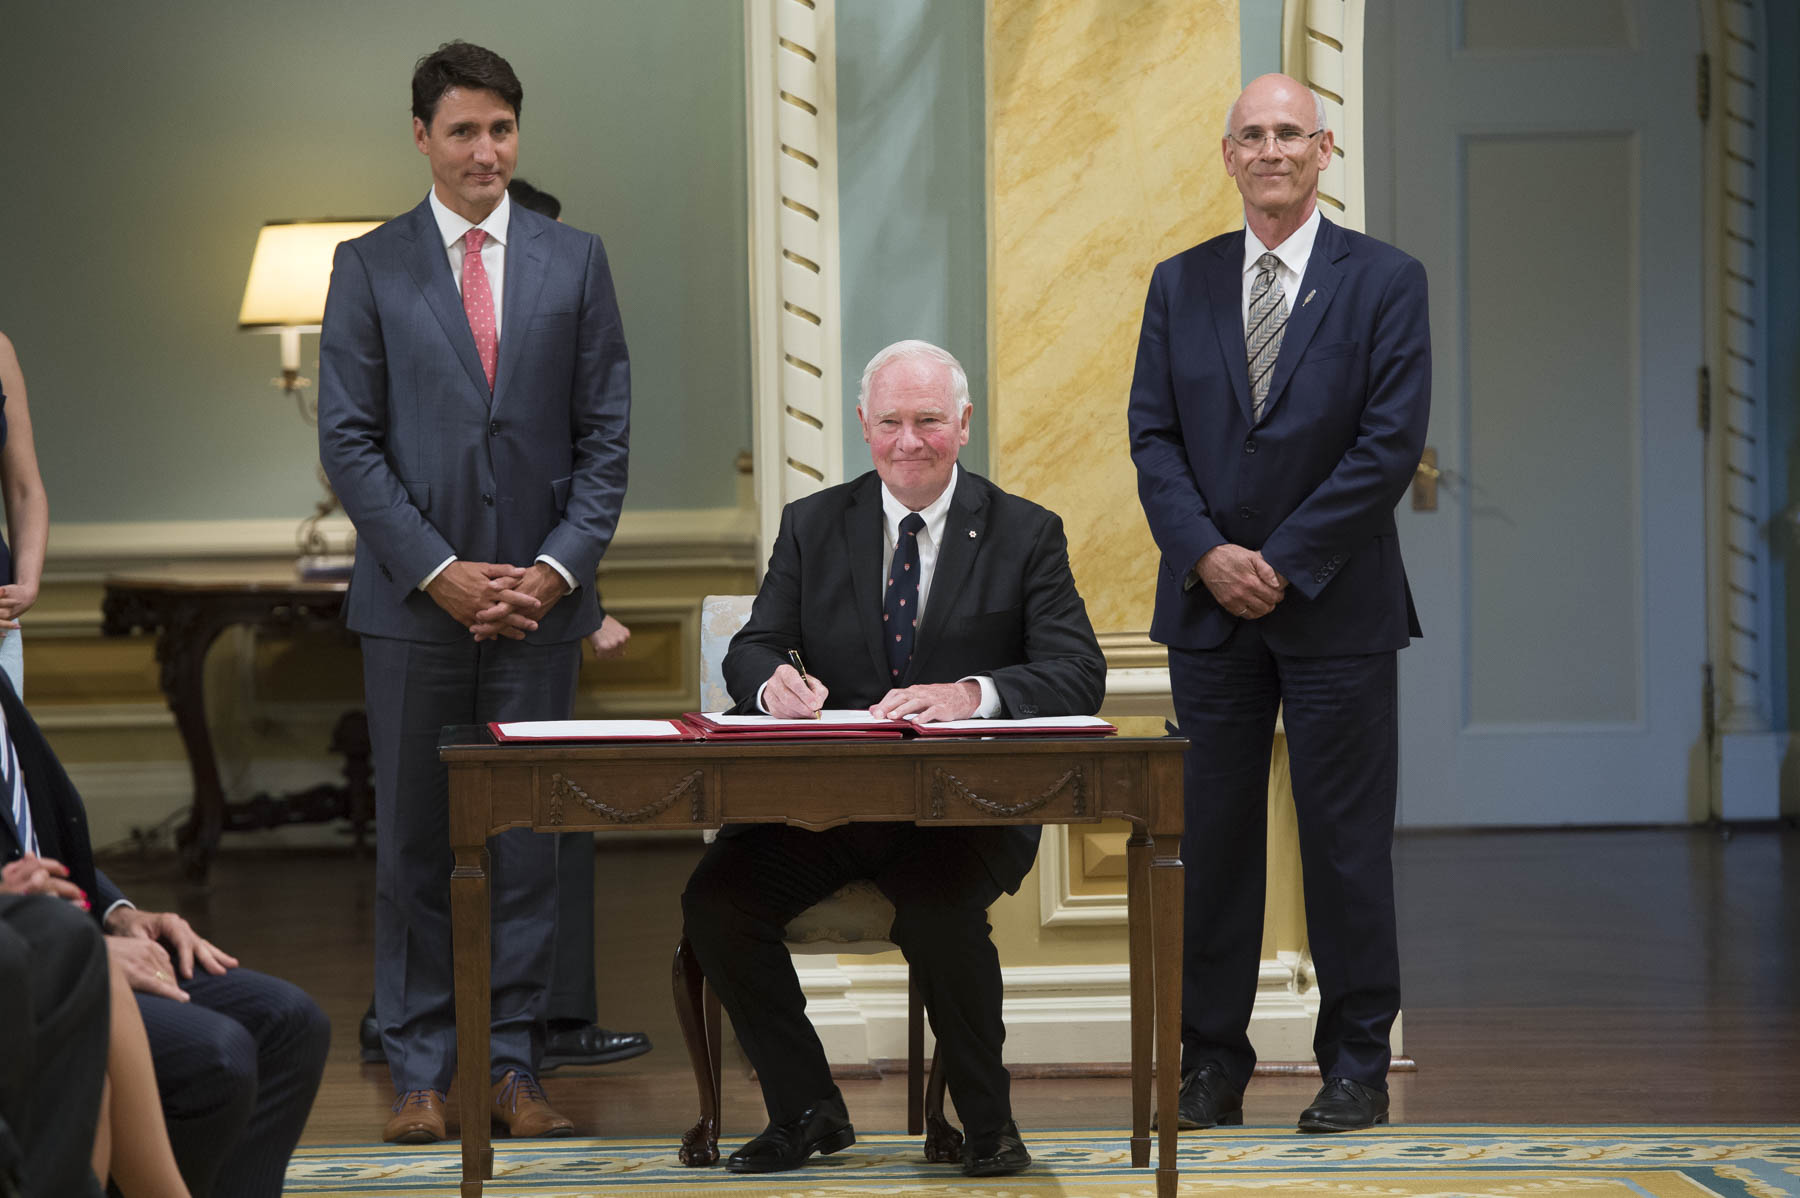 Following the swearing-in of the last new member of the ministry, the governor general, the prime minister and the clerk of the Privy council signed the oath books to formally attest to the swearing-in of the ministry.